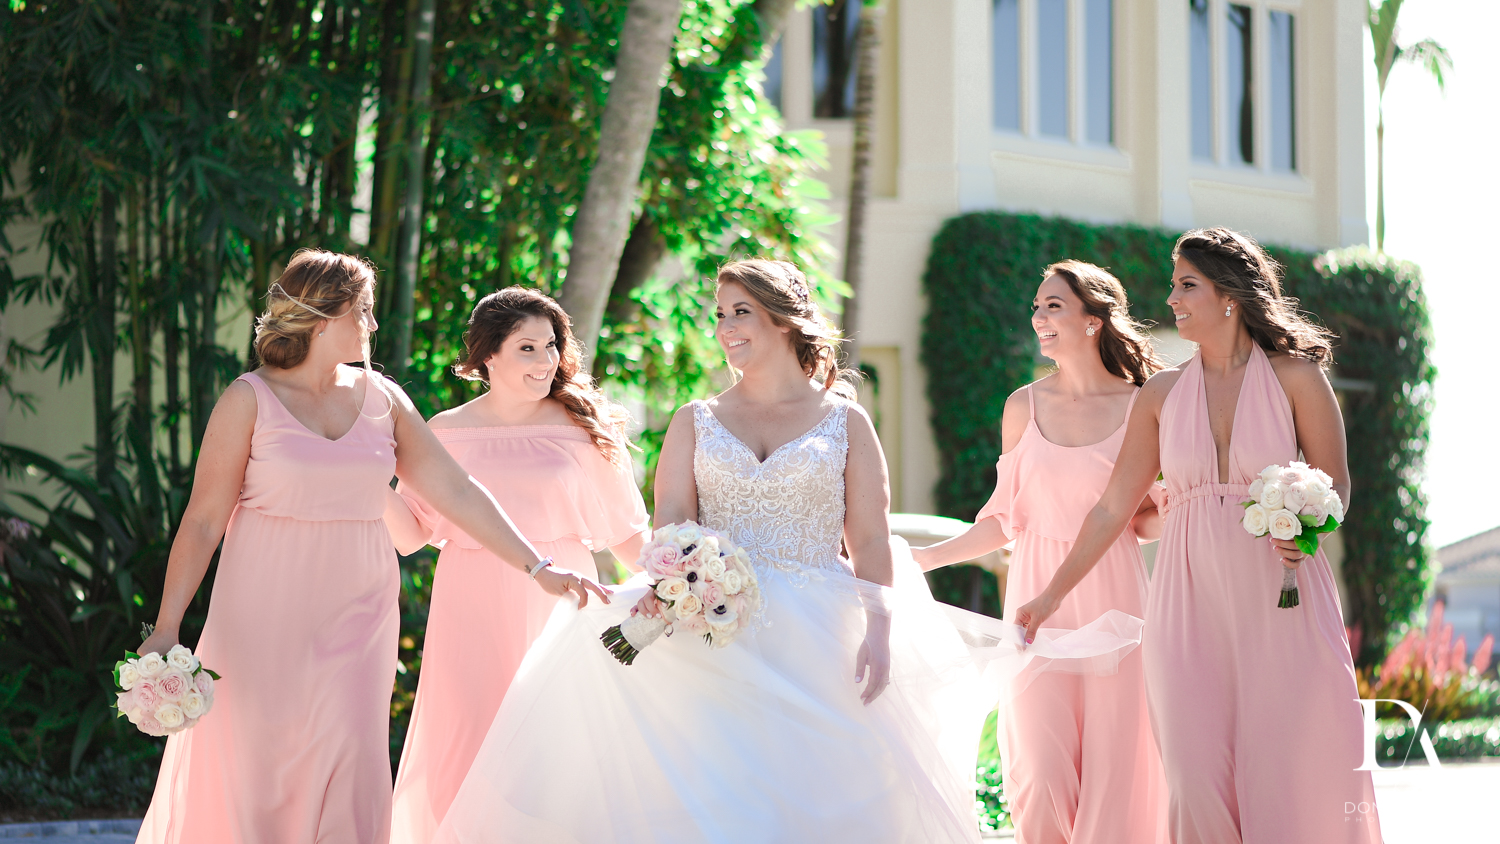 Candid bridesmaids at Romantic Outdoors Wedding at Woodfield Country Club in Boca Raton, Florida by Domino Arts Photography